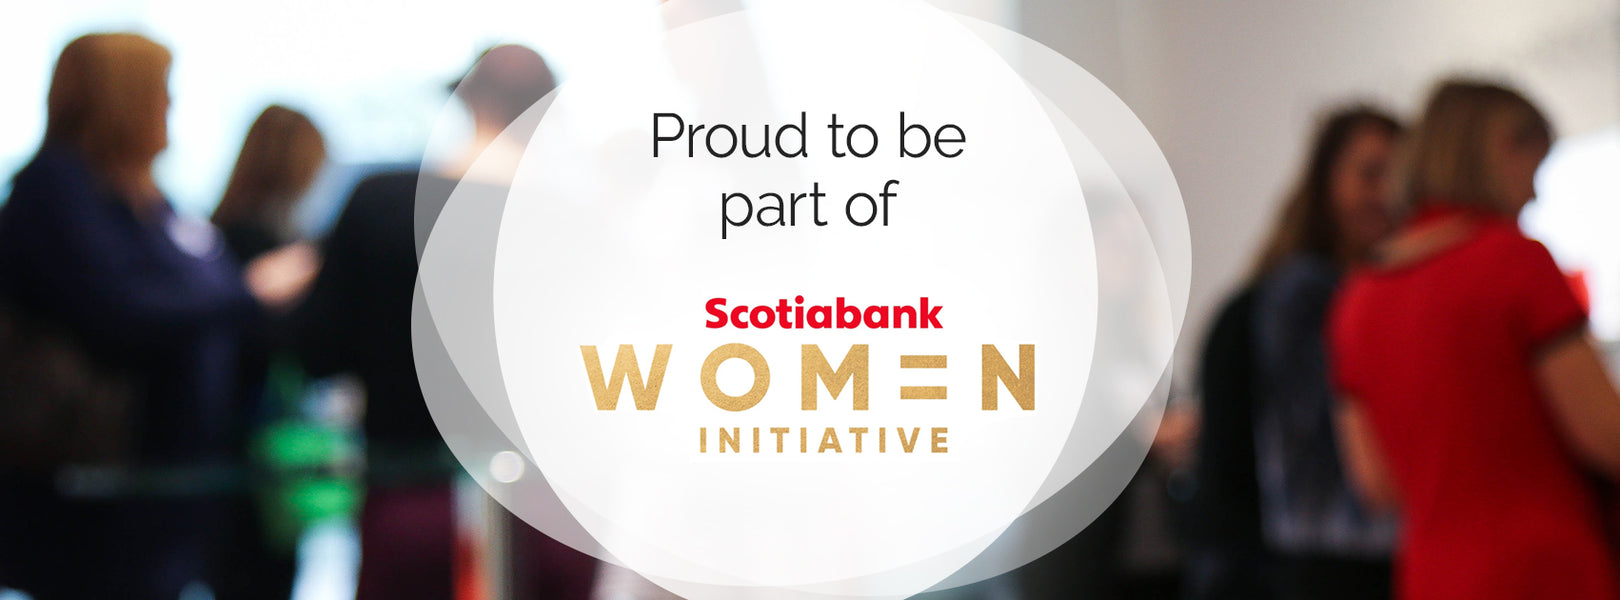 Scotiabank Women's Initiative